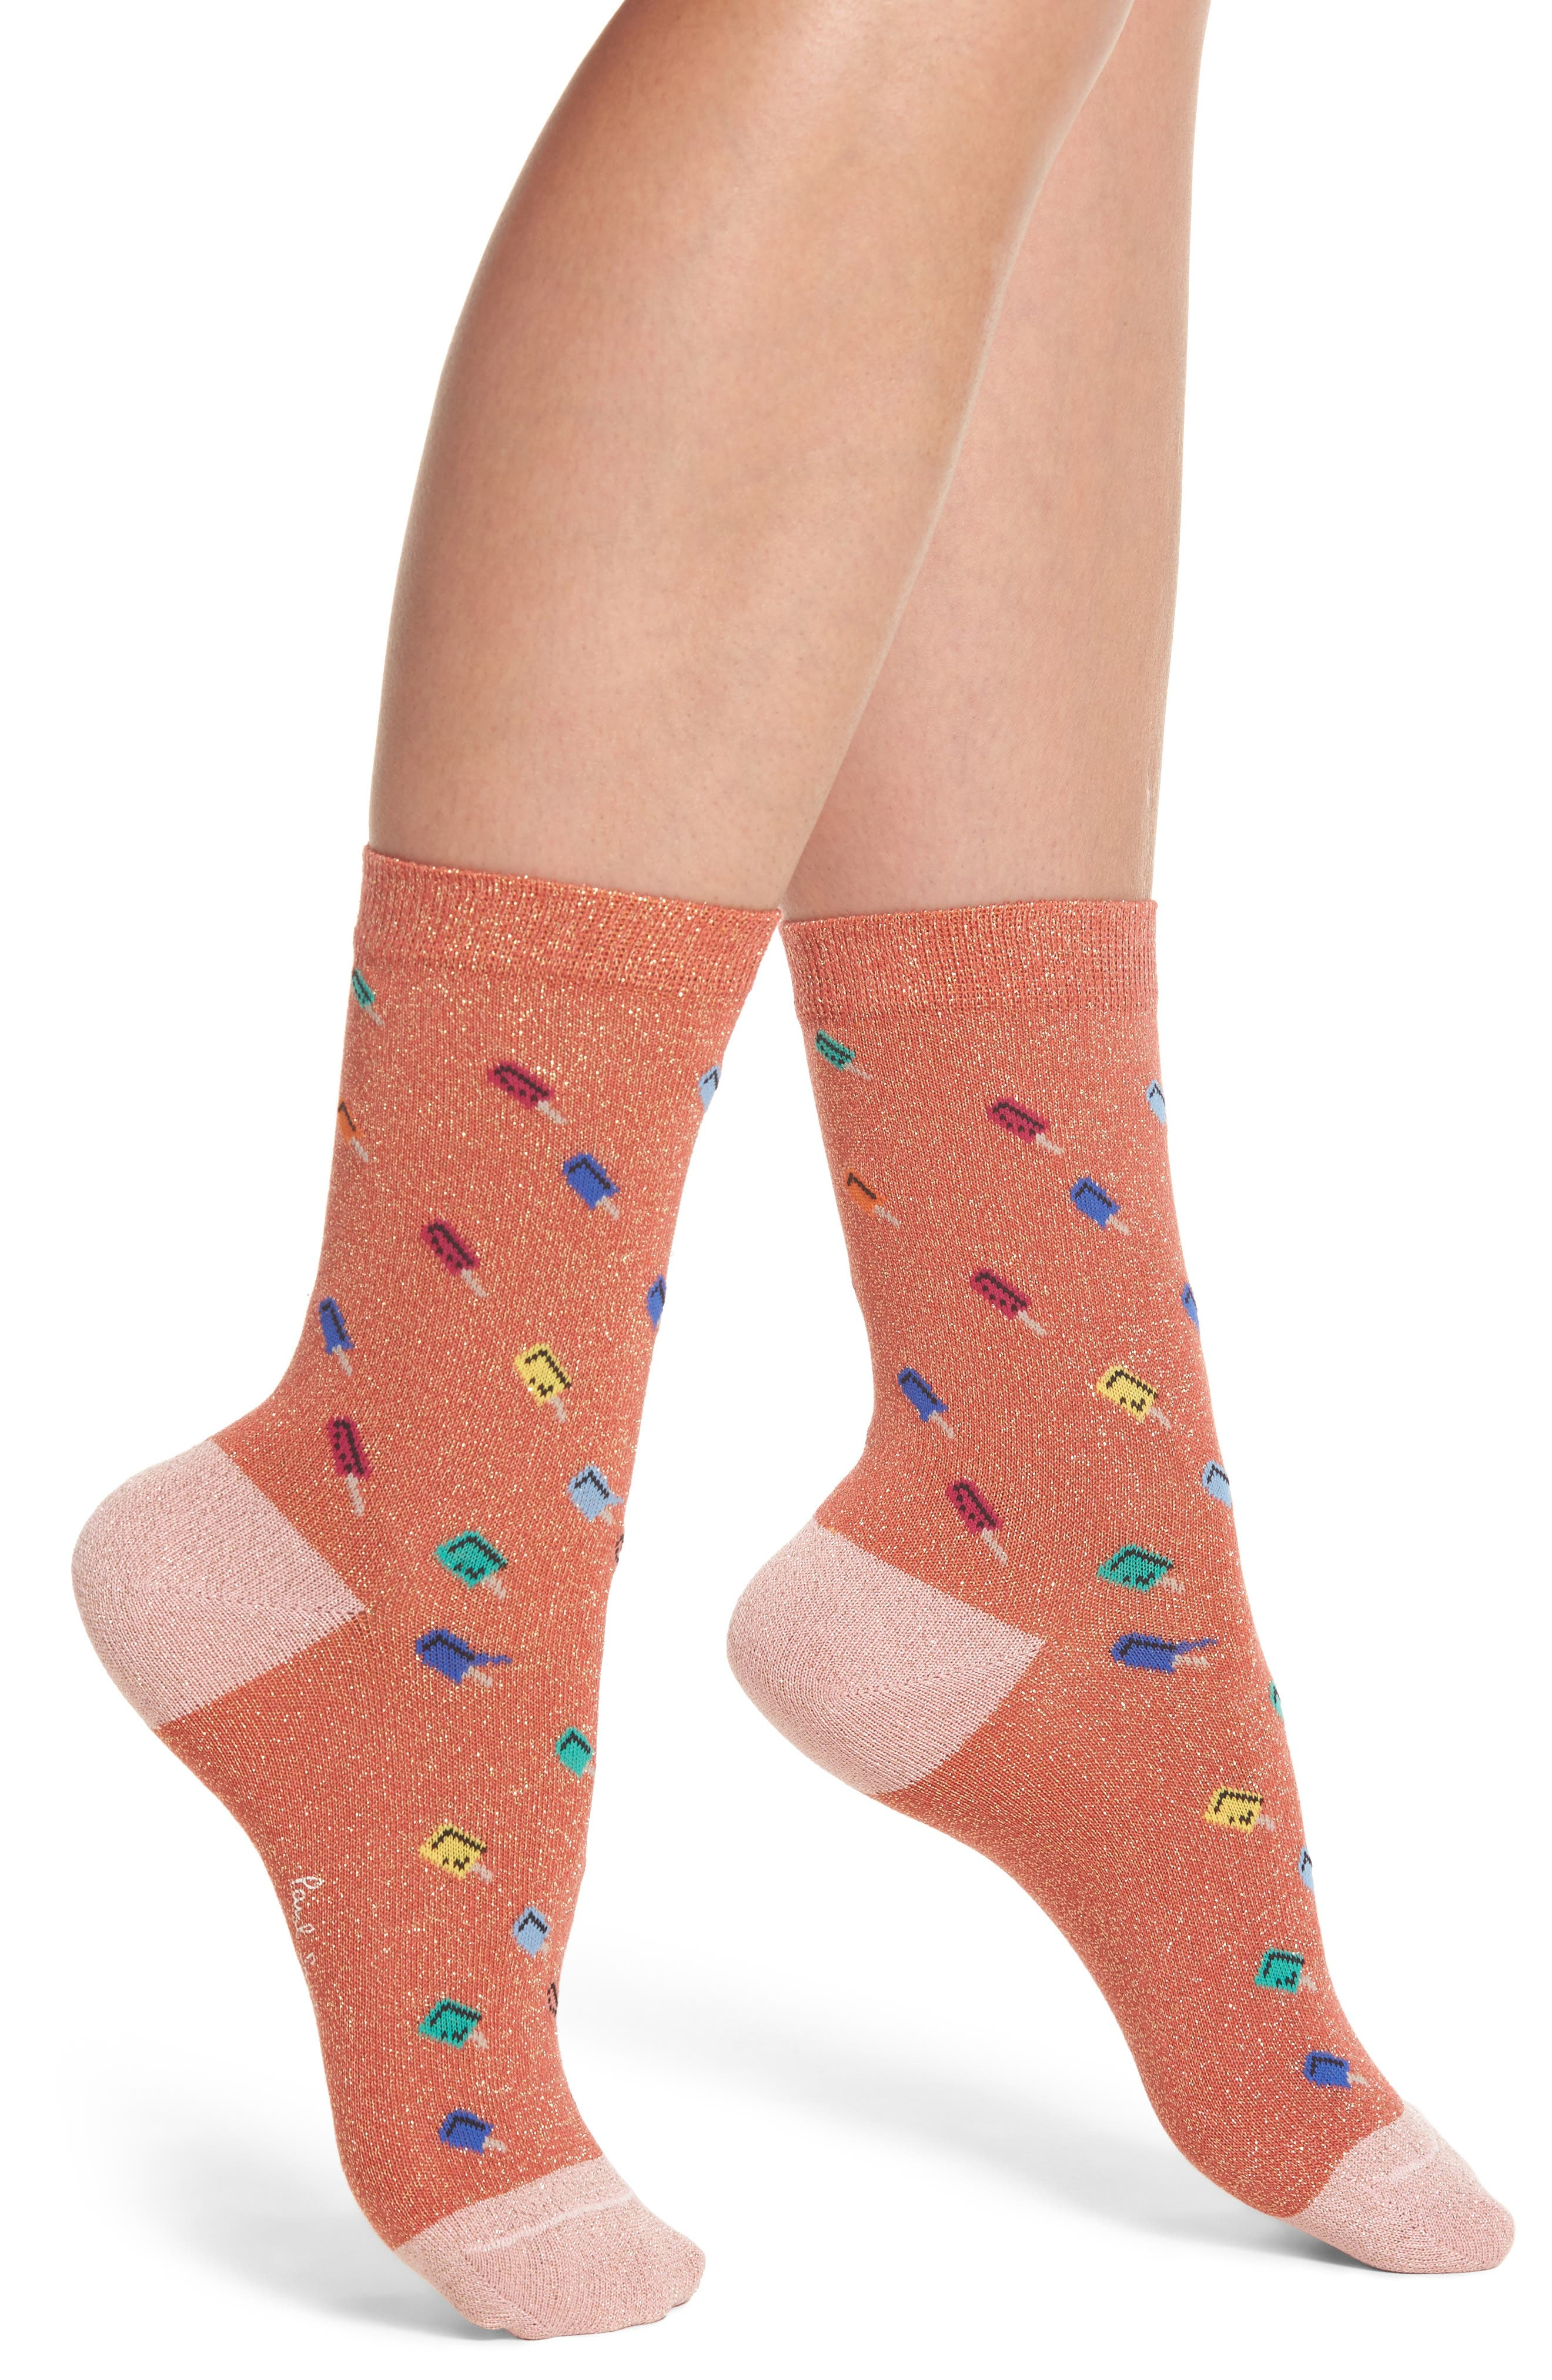 Paul Smith Fantasia Ice Lolly Crew Socks